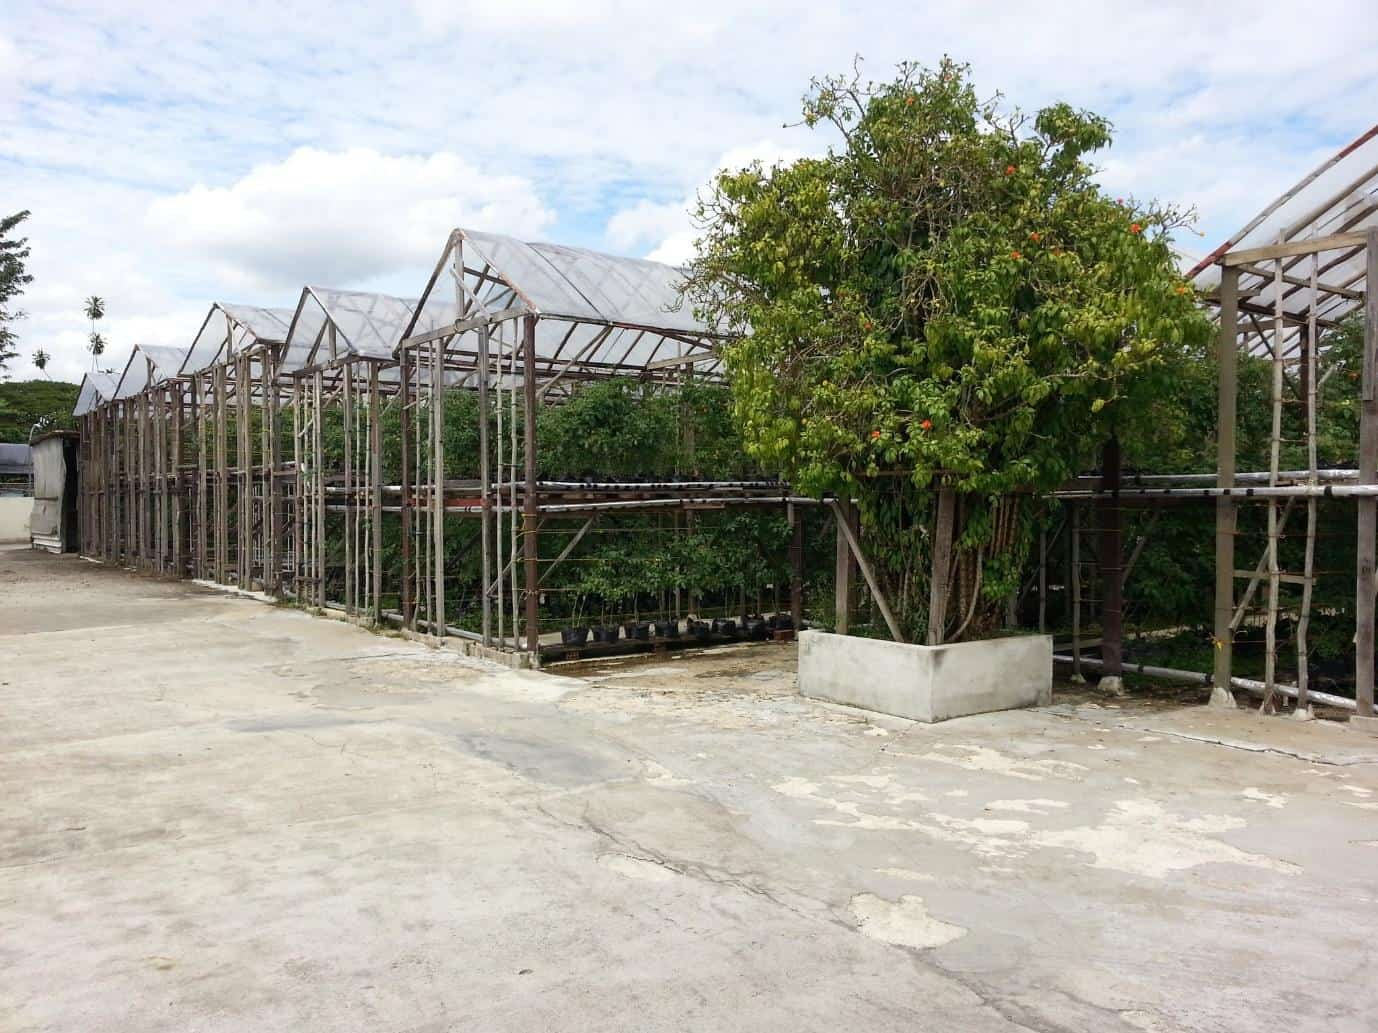 Pacific Agro Farm Food suburbs Singapore Urban farms in every neighbourhood, Is there a farm in Singapore? there are farms  in singapore especially at tengah and kranji area